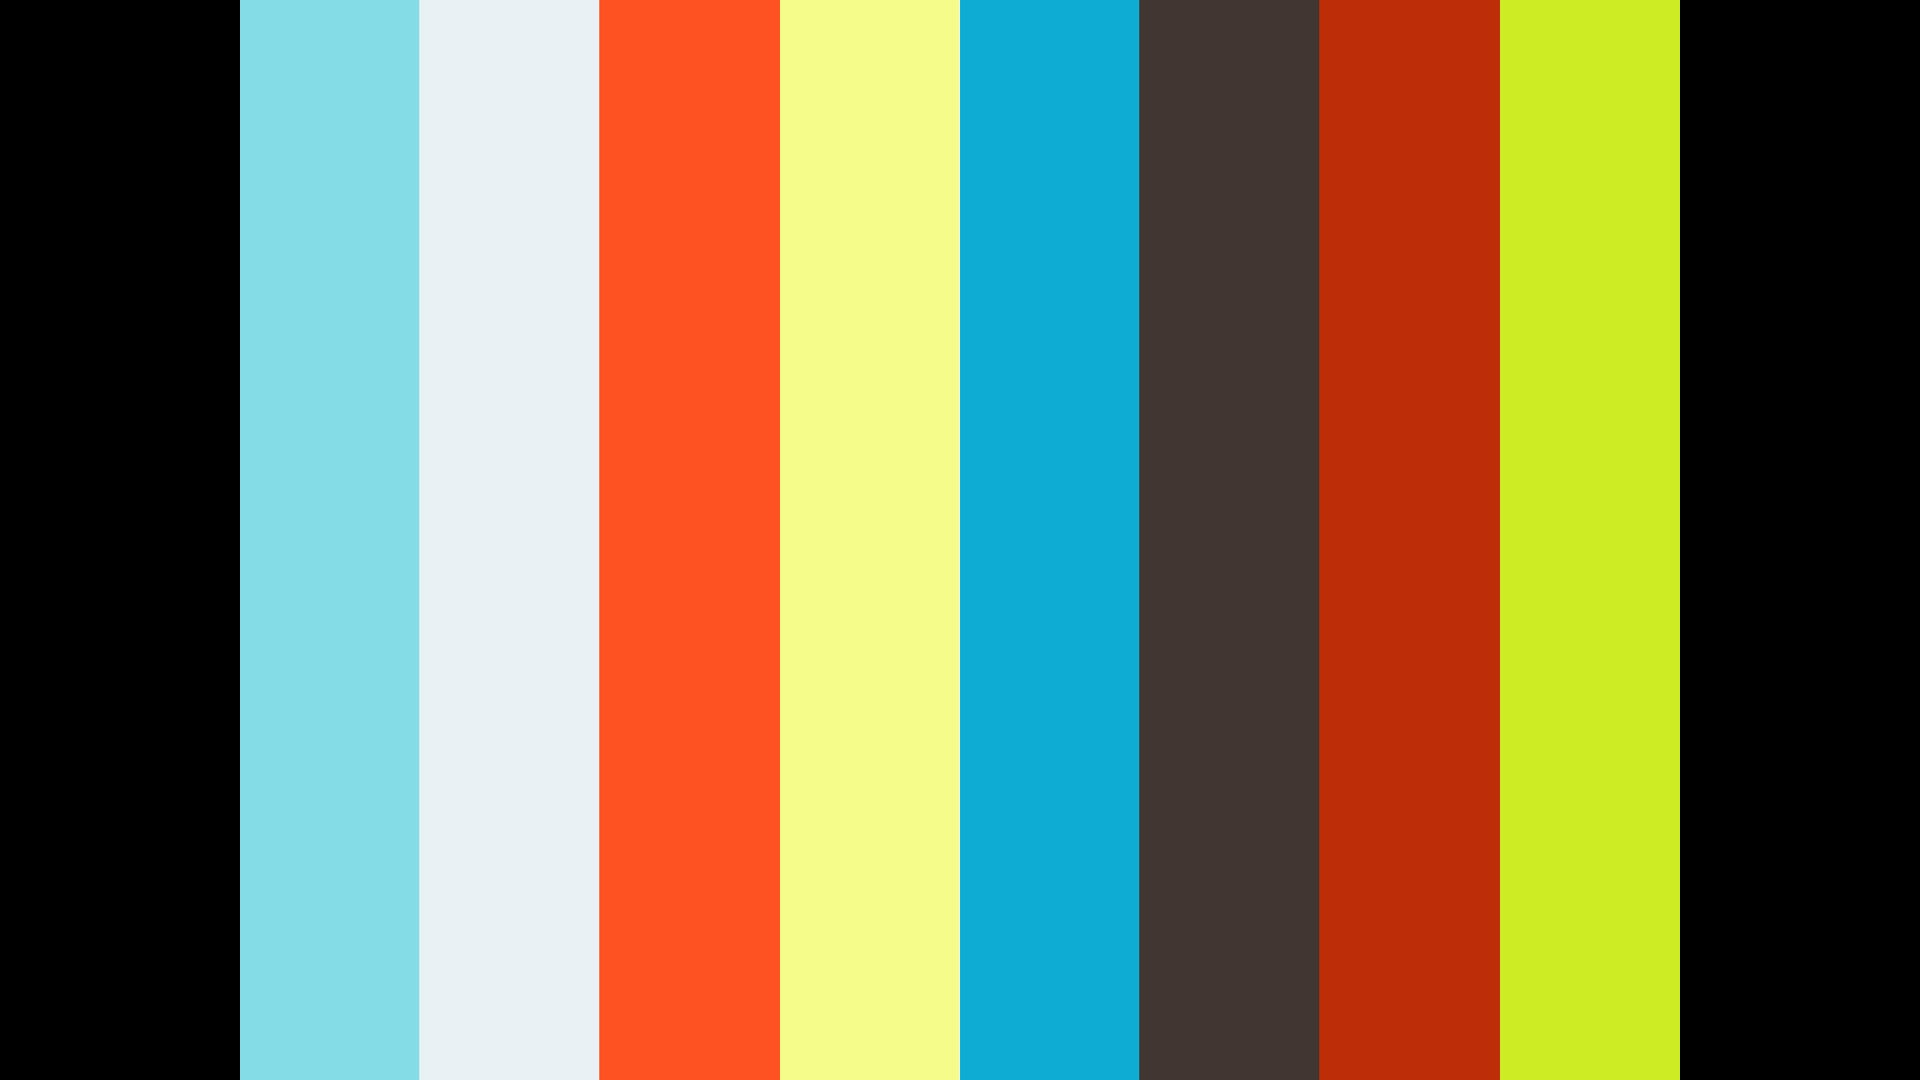 Ethiopianism.tv አርበኛ-ፋኖ #የገበሬ አመጽ #የ97 ምርጫ# Arbegna-Fana #Peasent Revolt #97election 12 June 2020/19